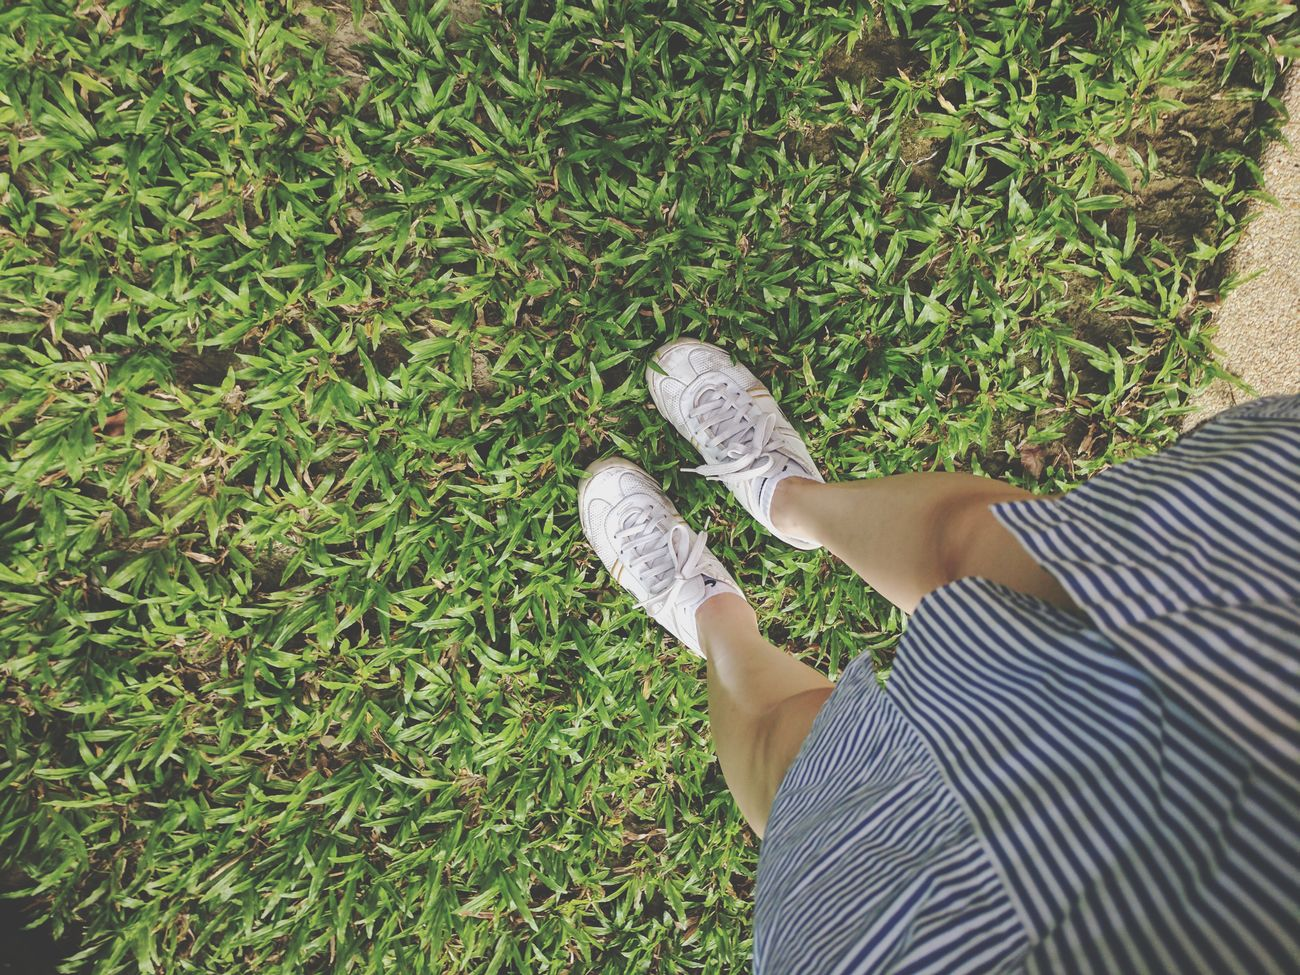 ๓๙ 🌿 SundayFunday Outdoors Greenery Grassy Old Shoes